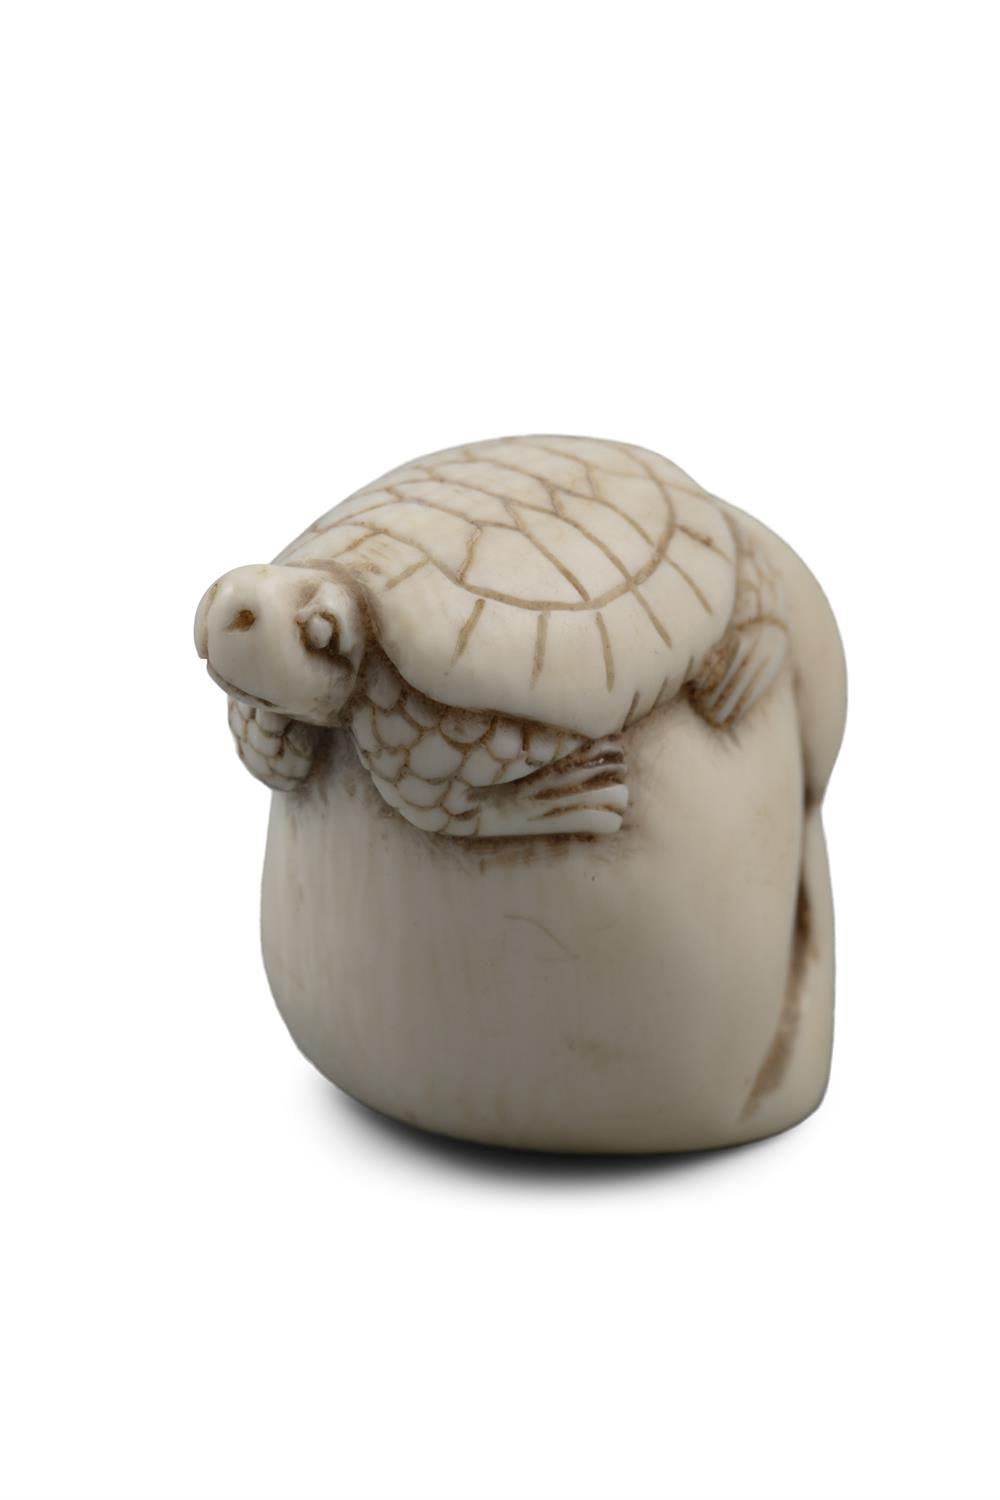 *VANITY - A GROUP OF TWO (2) 'SKULL' KATABORI NETSUKE Japan, 19th century The first one carved out - Image 18 of 18